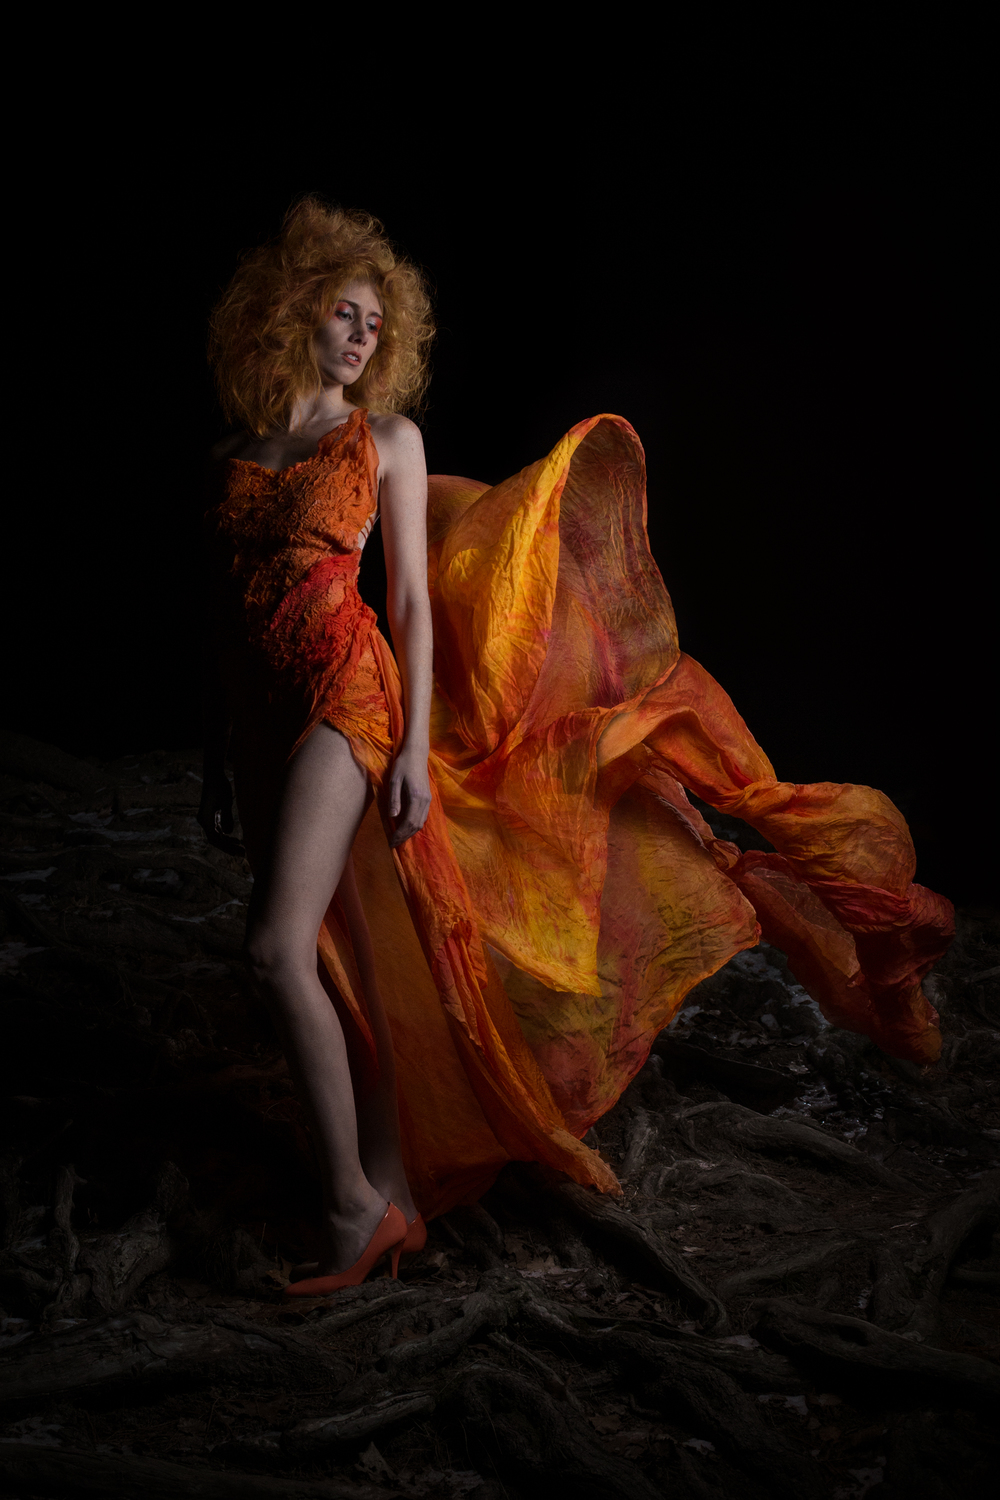 Photography: Lance Kenneth Blakney l Model: Jessica Hughes l Hair: Mike Drost l MUA: Billy Peterson l Fibre Art: Alexandra Keely l Silk Surface Design/Producer: Dee Wilkie